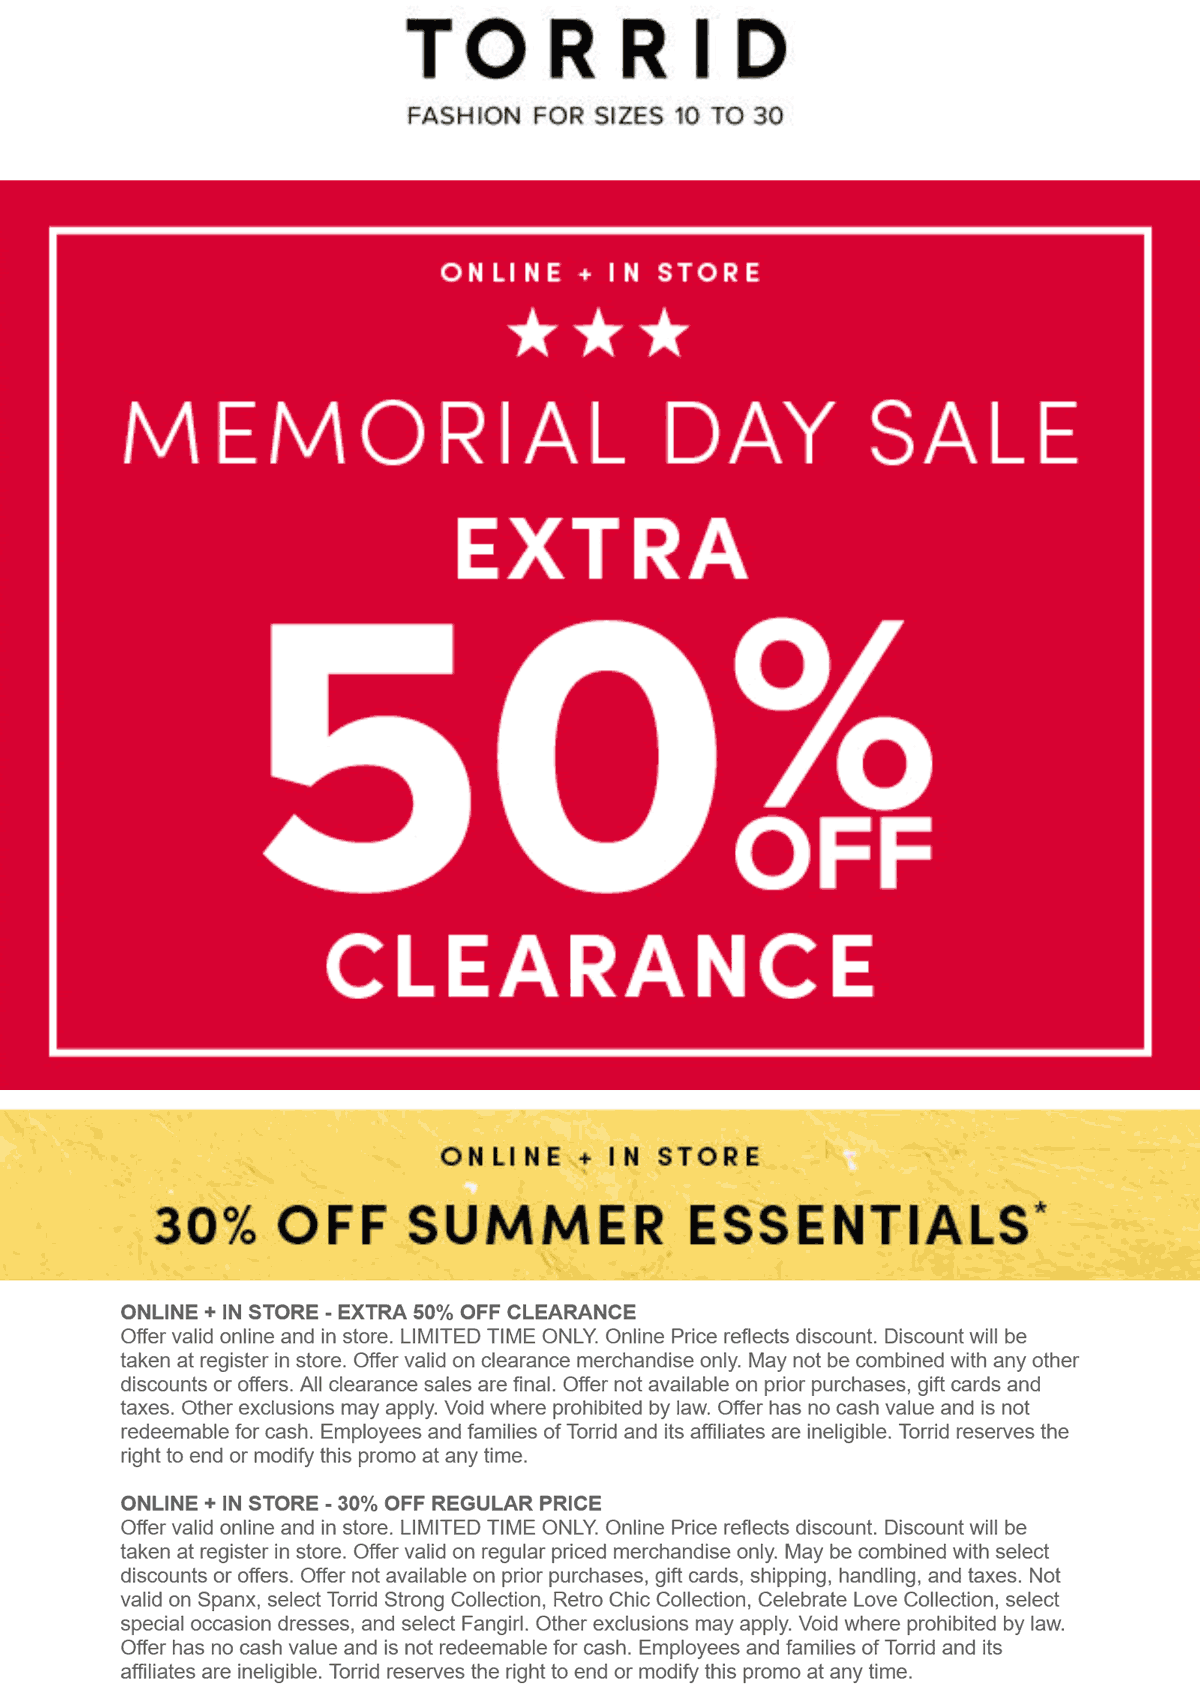 Torrid stores Coupon  Extra 50% off clearance & 30% off Summer at Torrid, ditto online #torrid